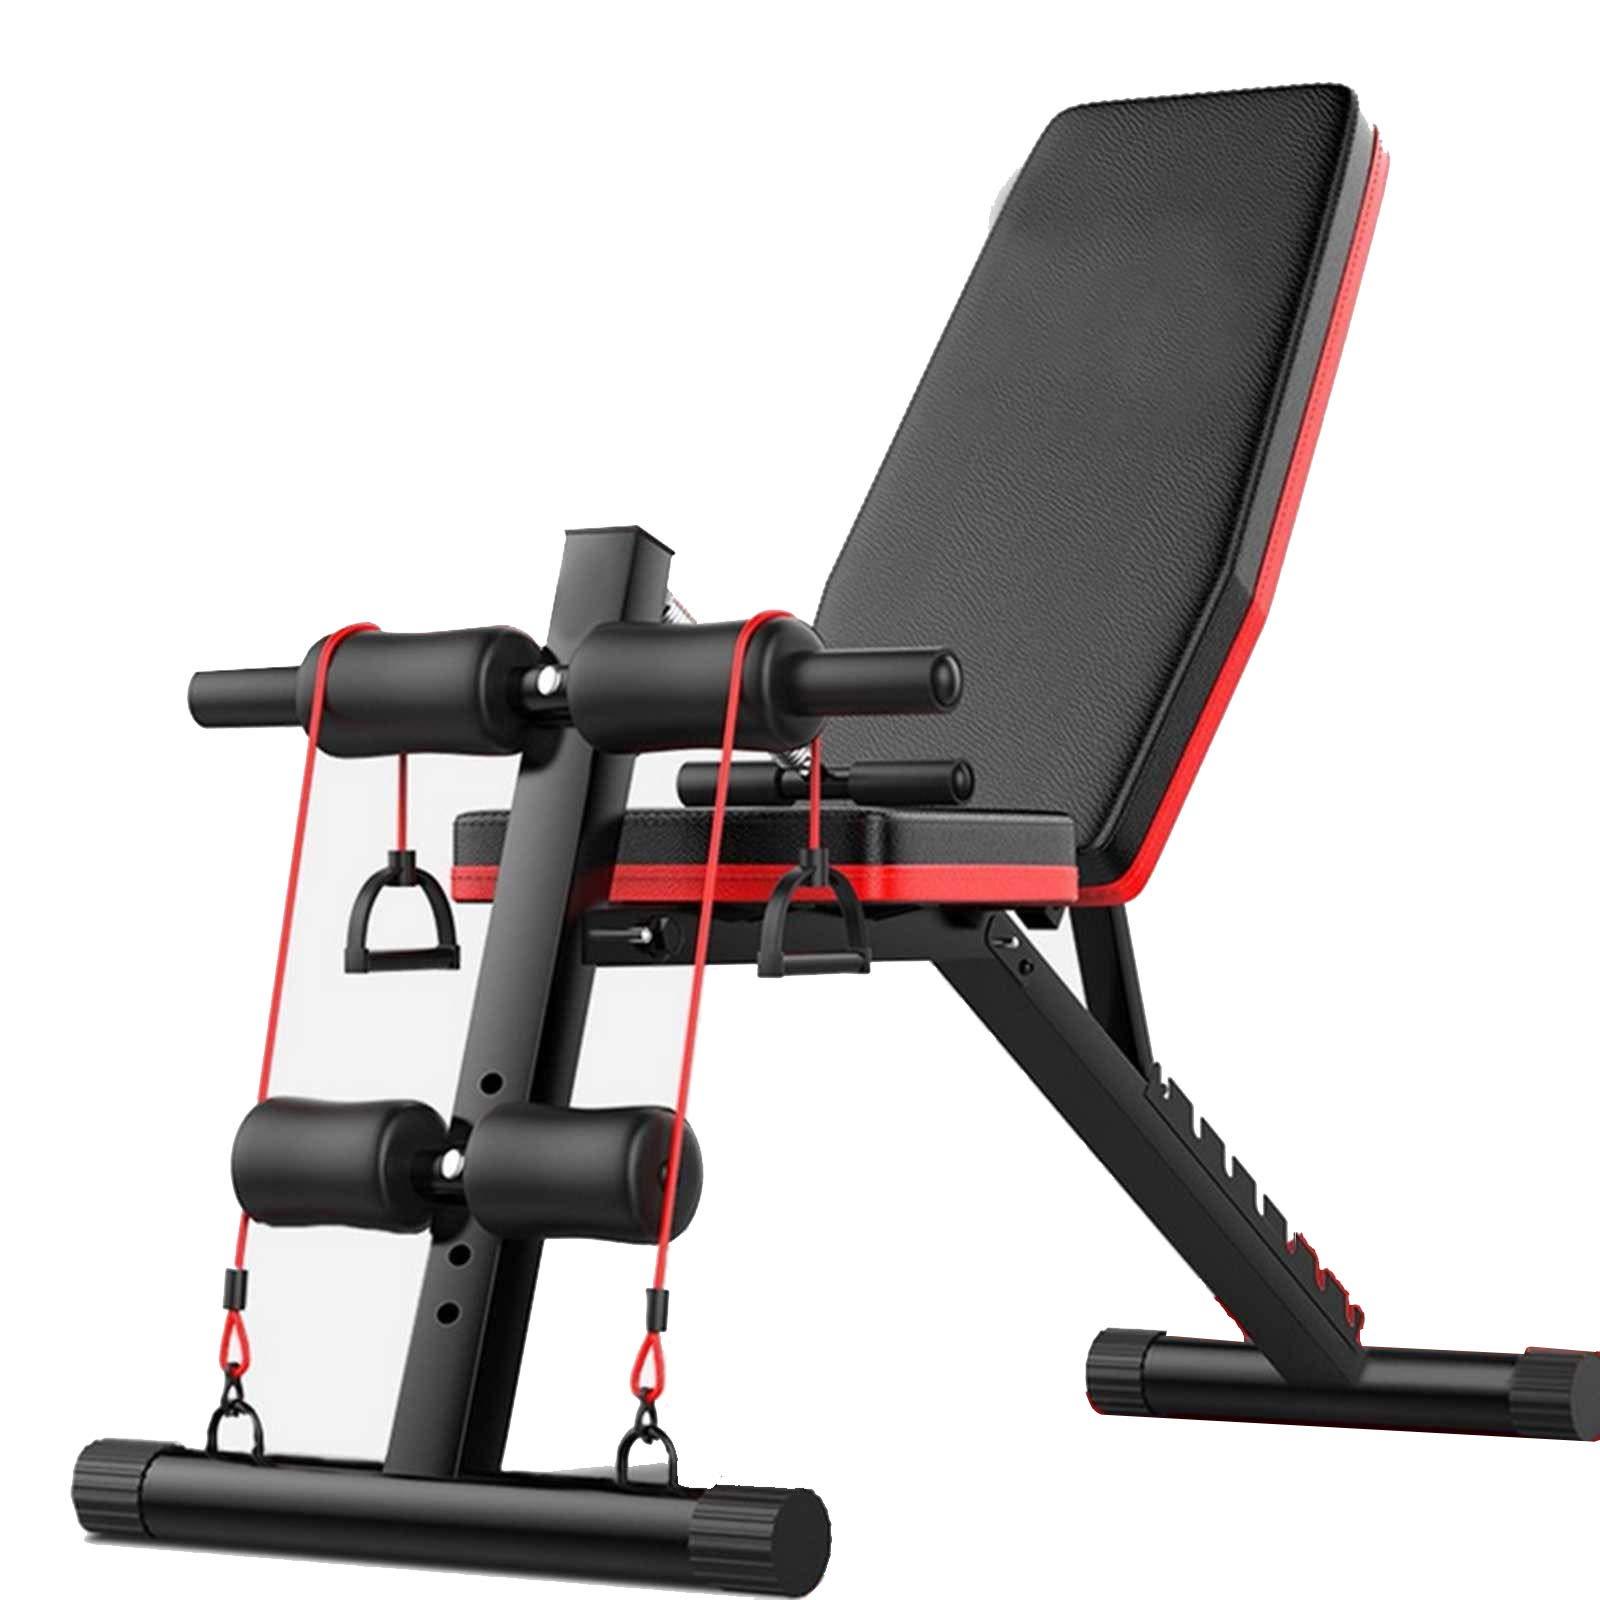 Tengma Sit up Bench, Weight Bench Adjustable, Workout Benches for Home, Olympic Weight Bench, Strength Training Bench, Incline/Decline Abs Bench Press Flat Bench Fly Weight Press Fitness Rope